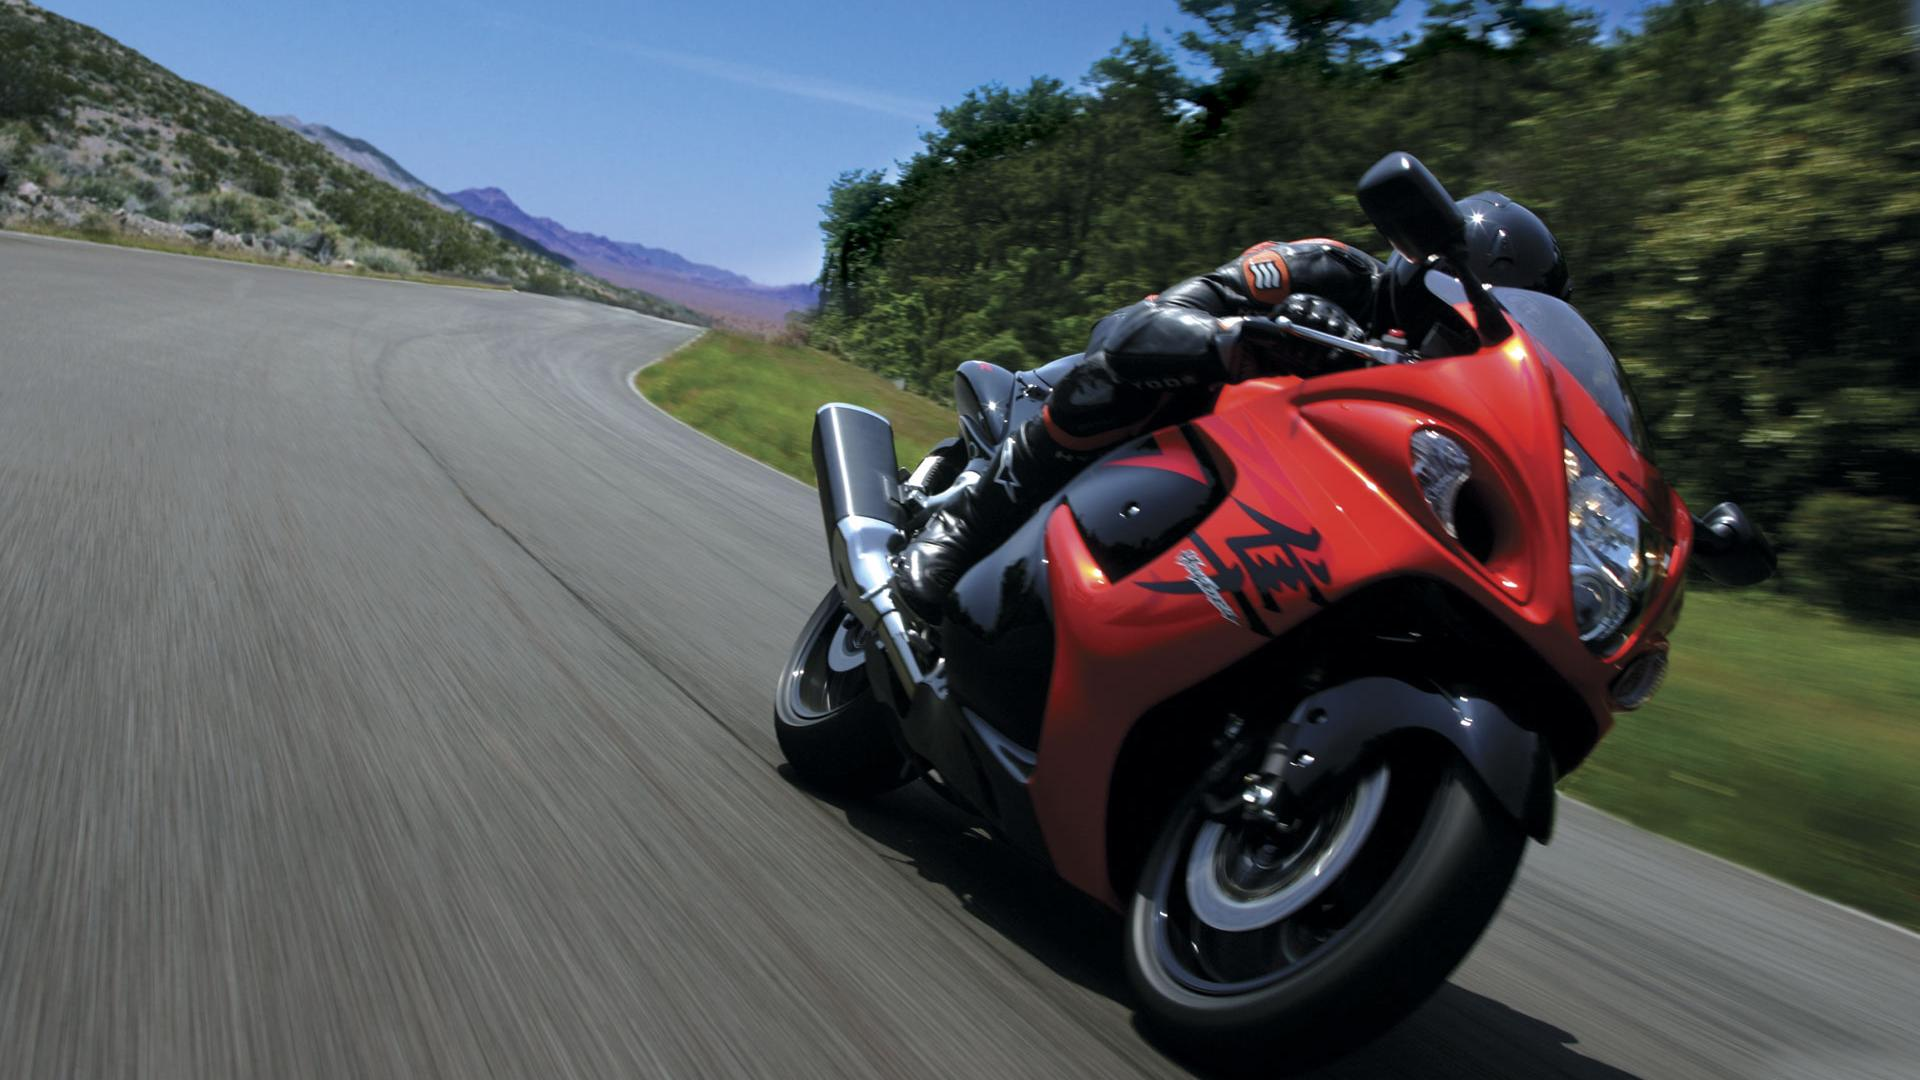 Suzuki applies a new patent for the mighty Hayabusa